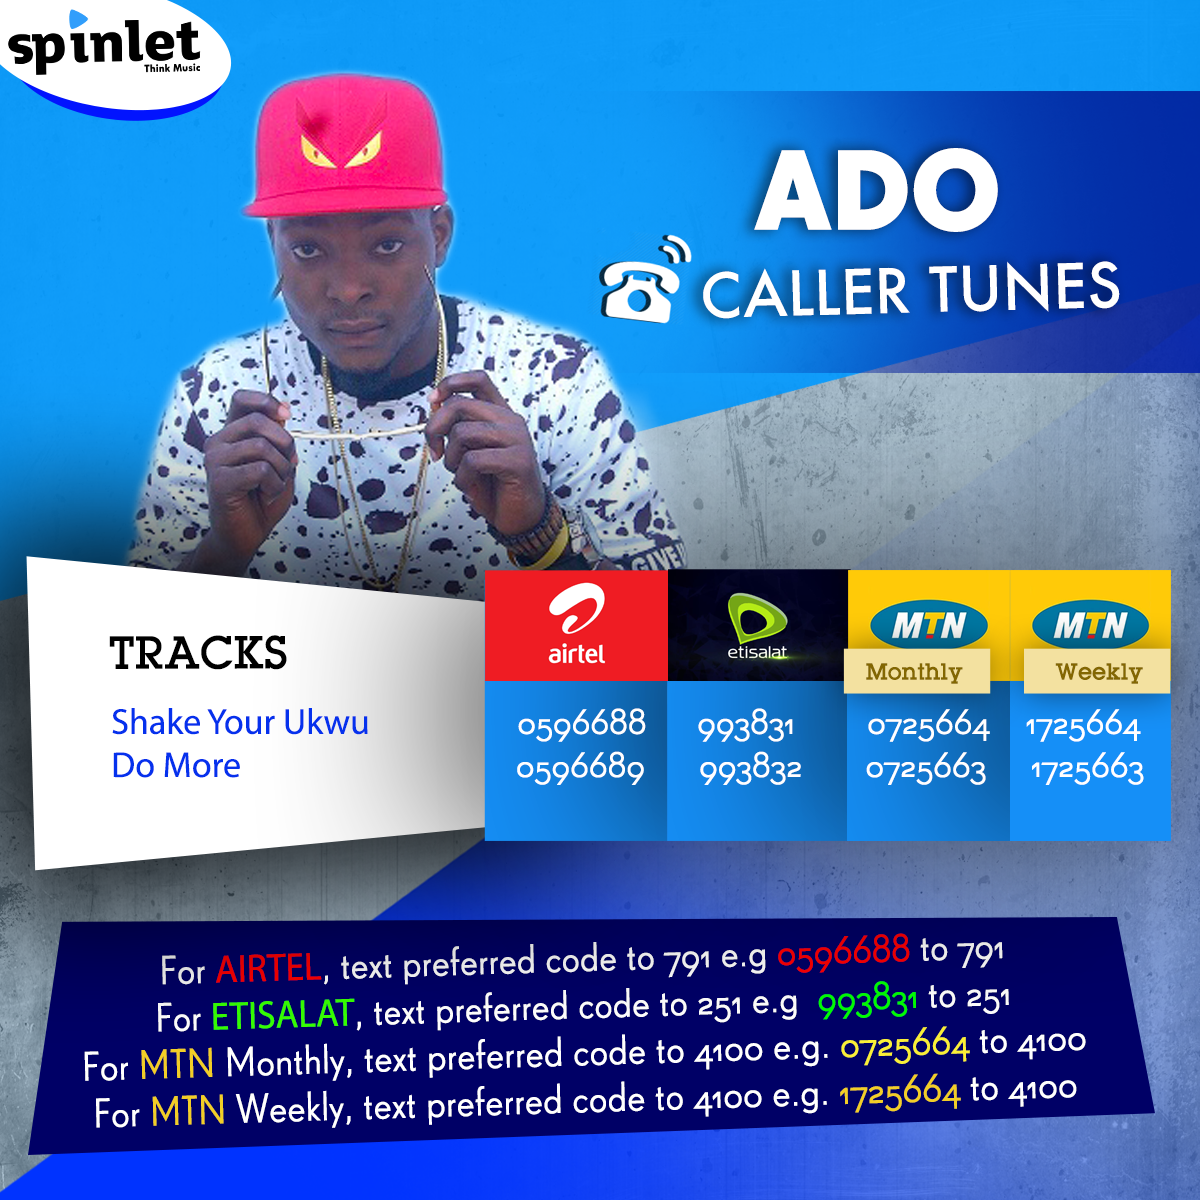 Get the tunes from Spinlet By @IamAdoOfficial